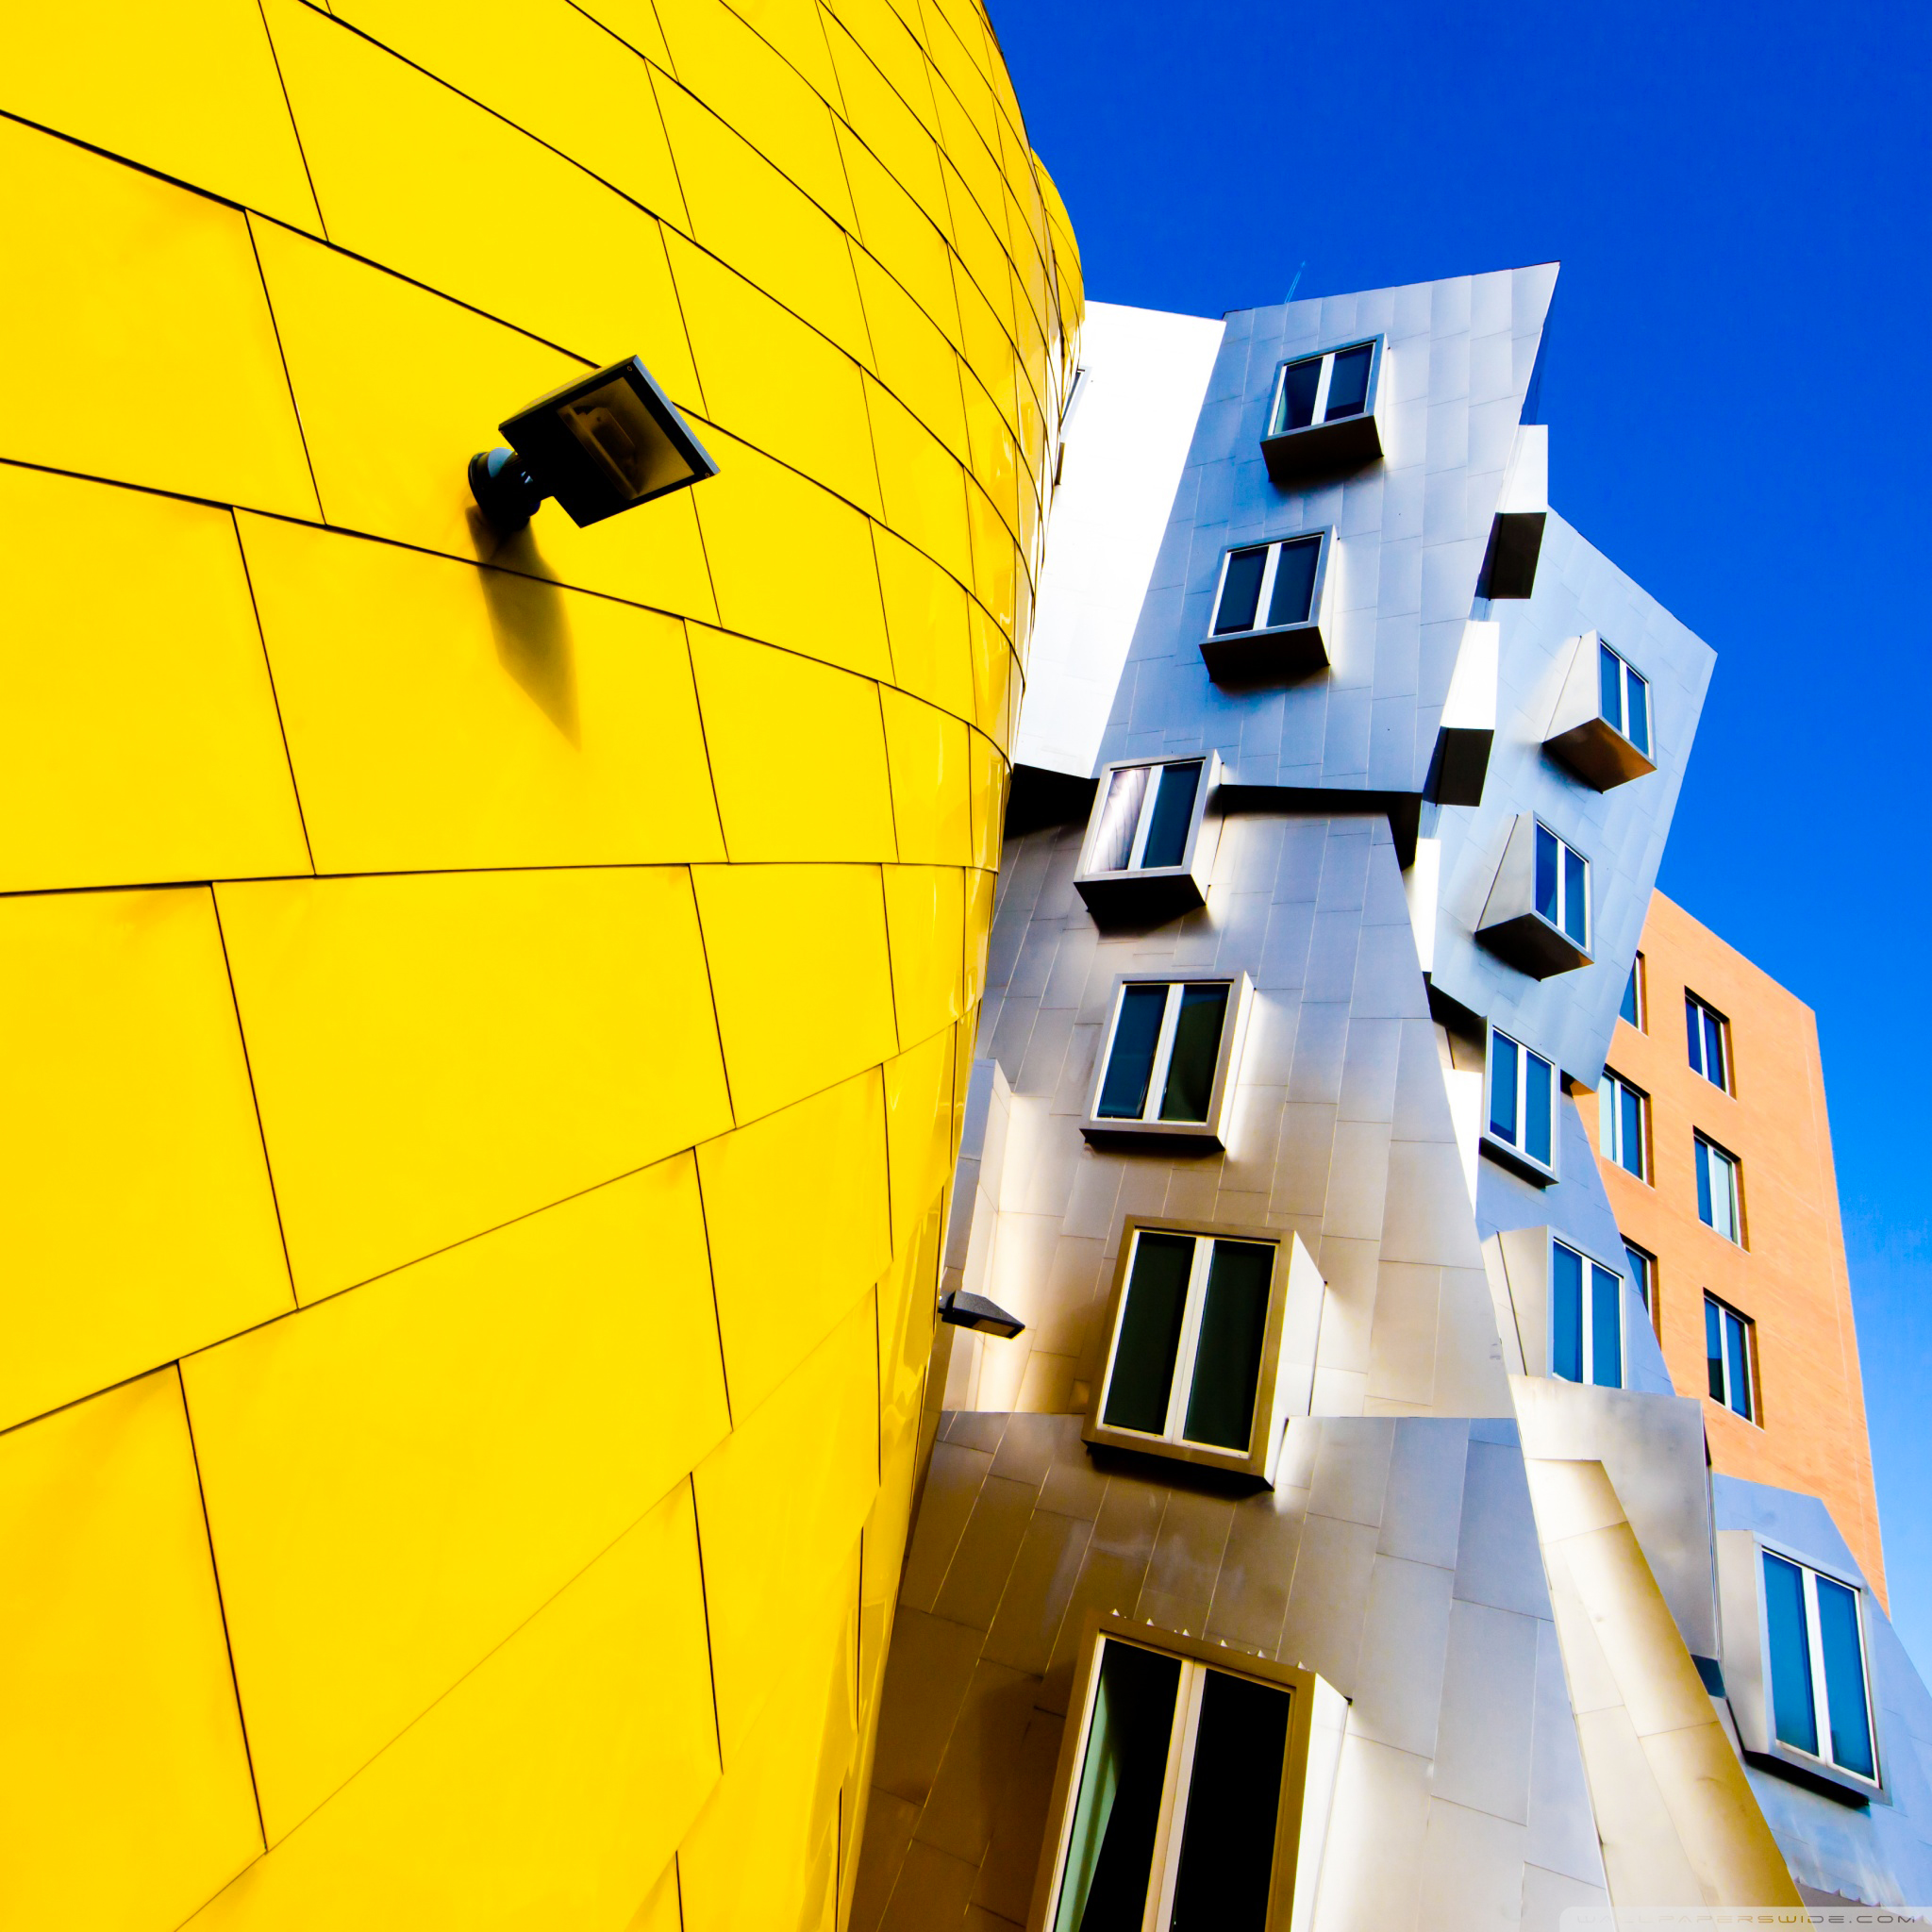 Frank-Gehry-Architecture-3Wallpapers-iPad-Retina